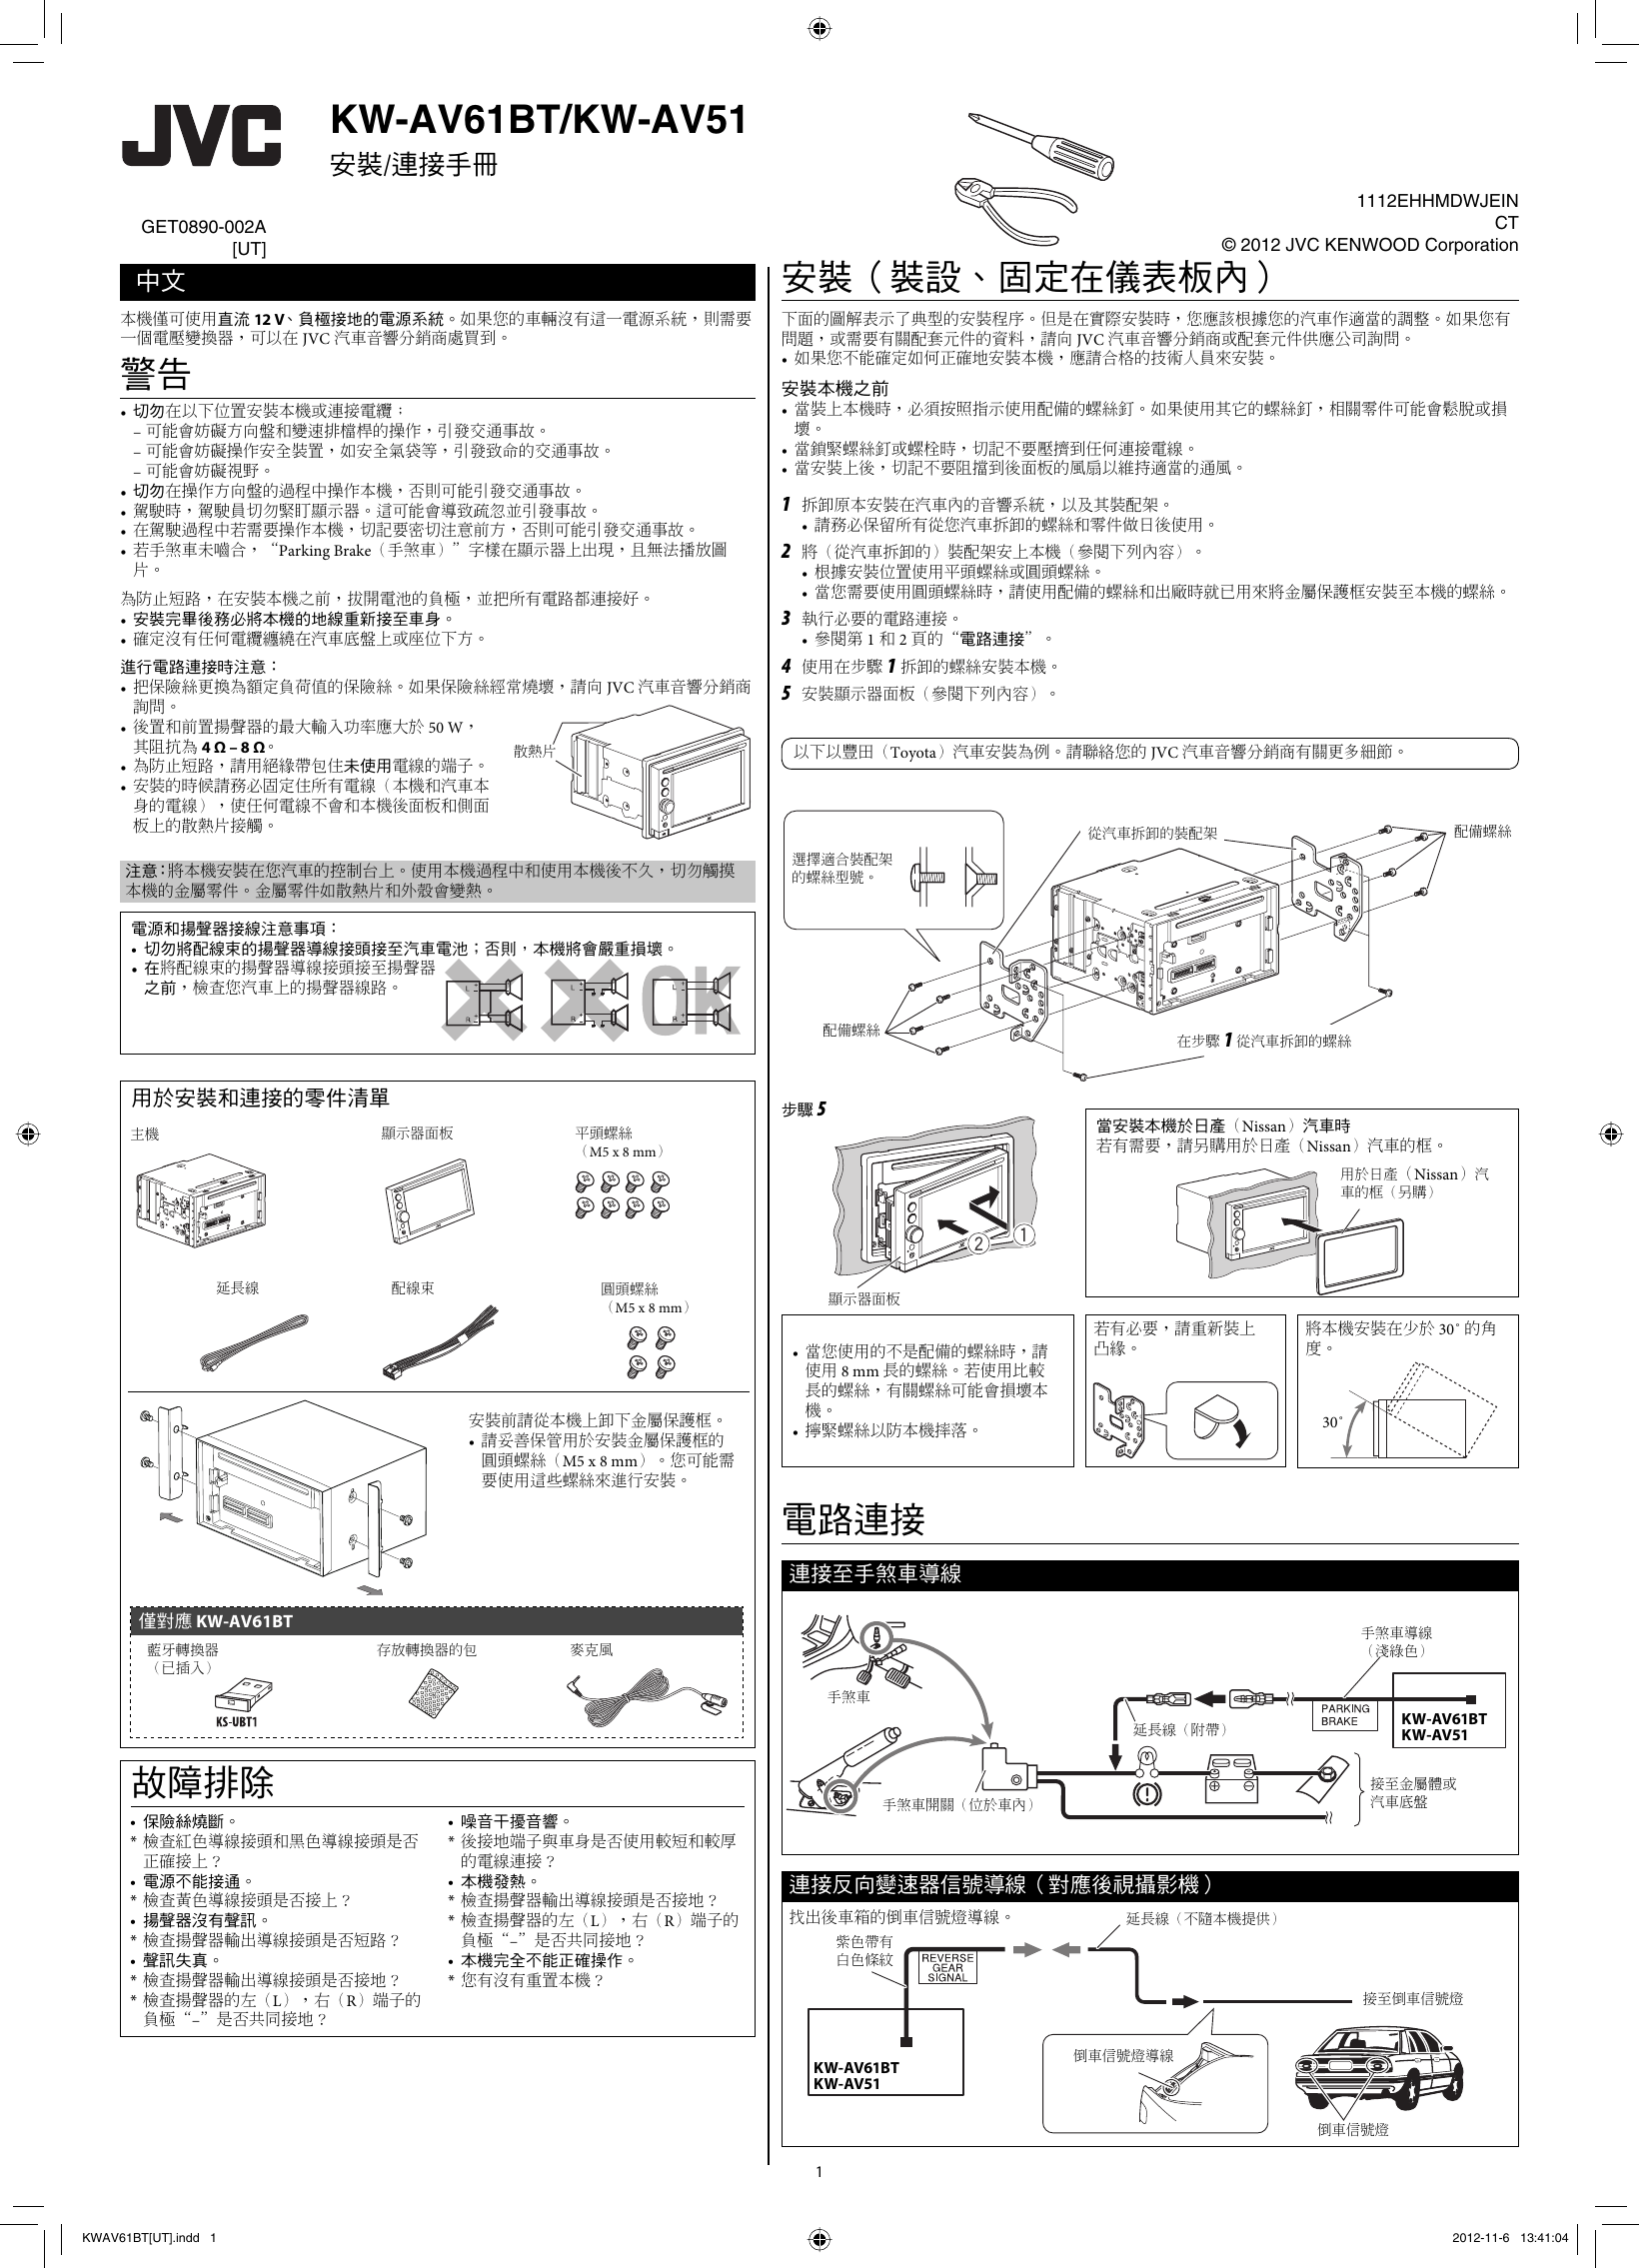 Jvc Kw Av61bt Wiring Diagram